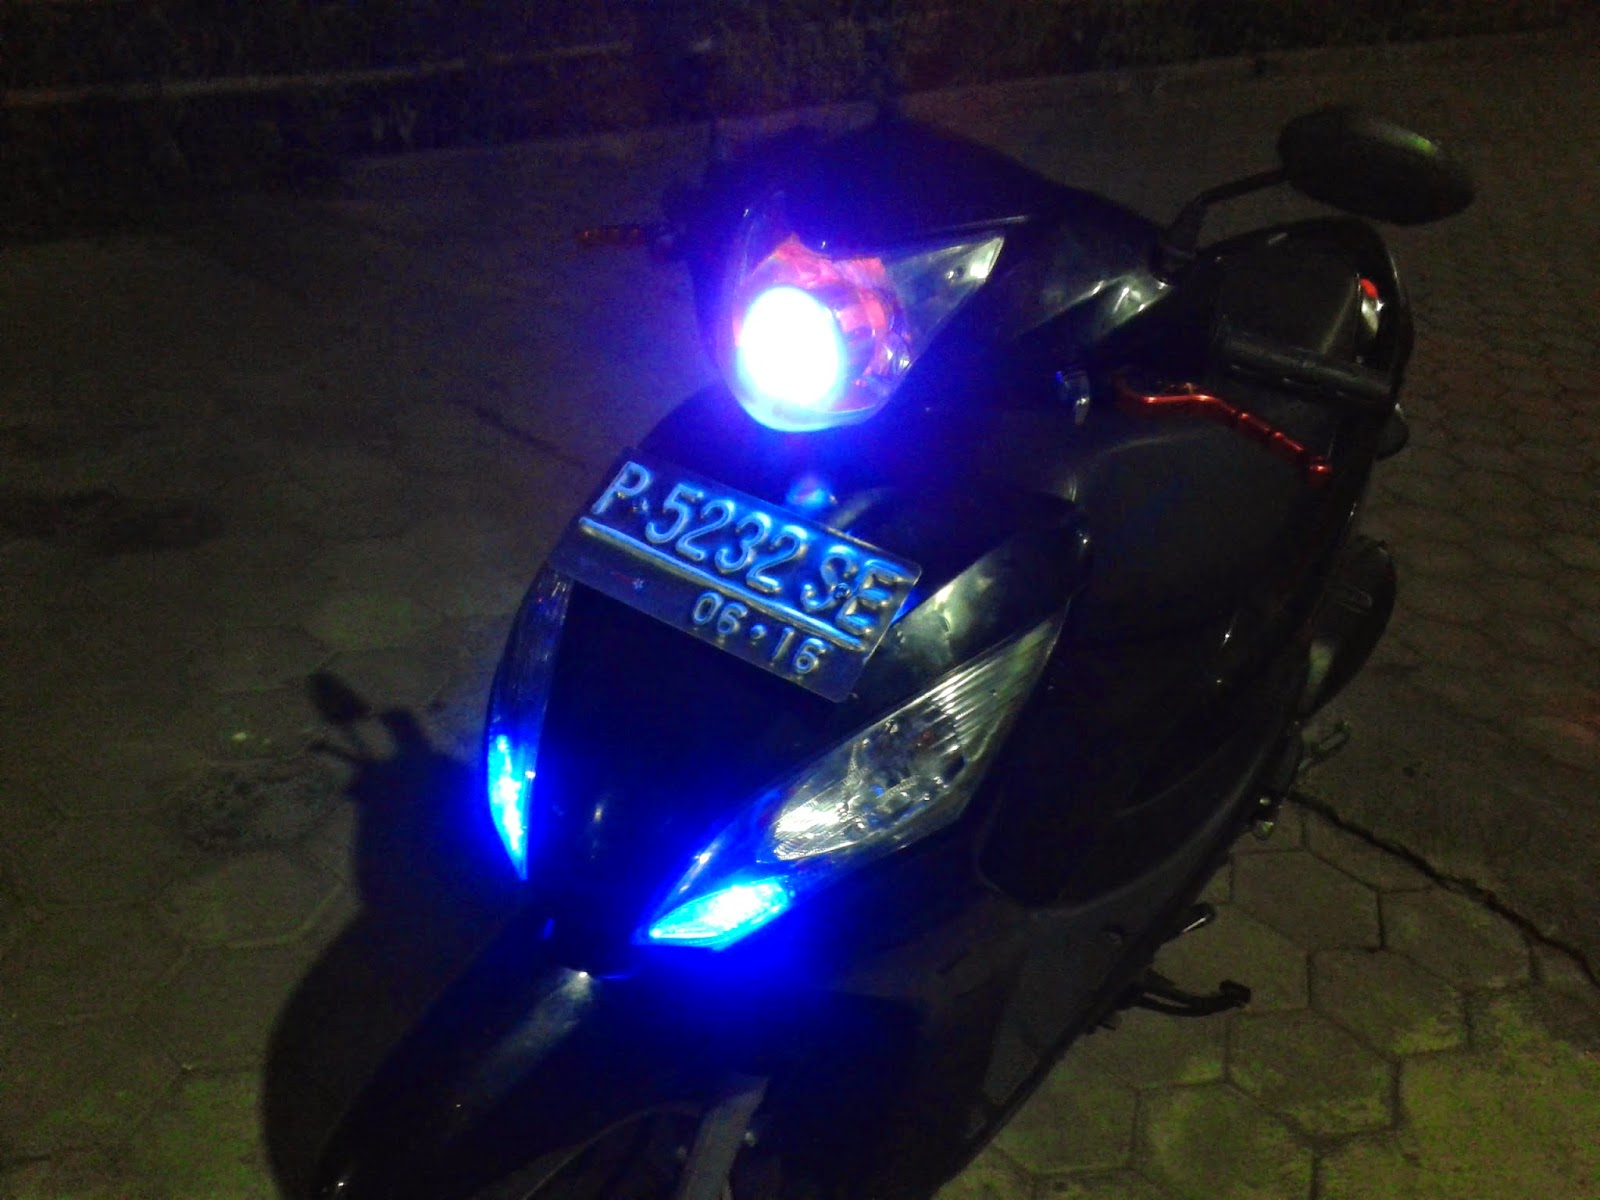 Download 81 Modifikasi Motor Matic Honda Spacy Terupdate Dinding Motor